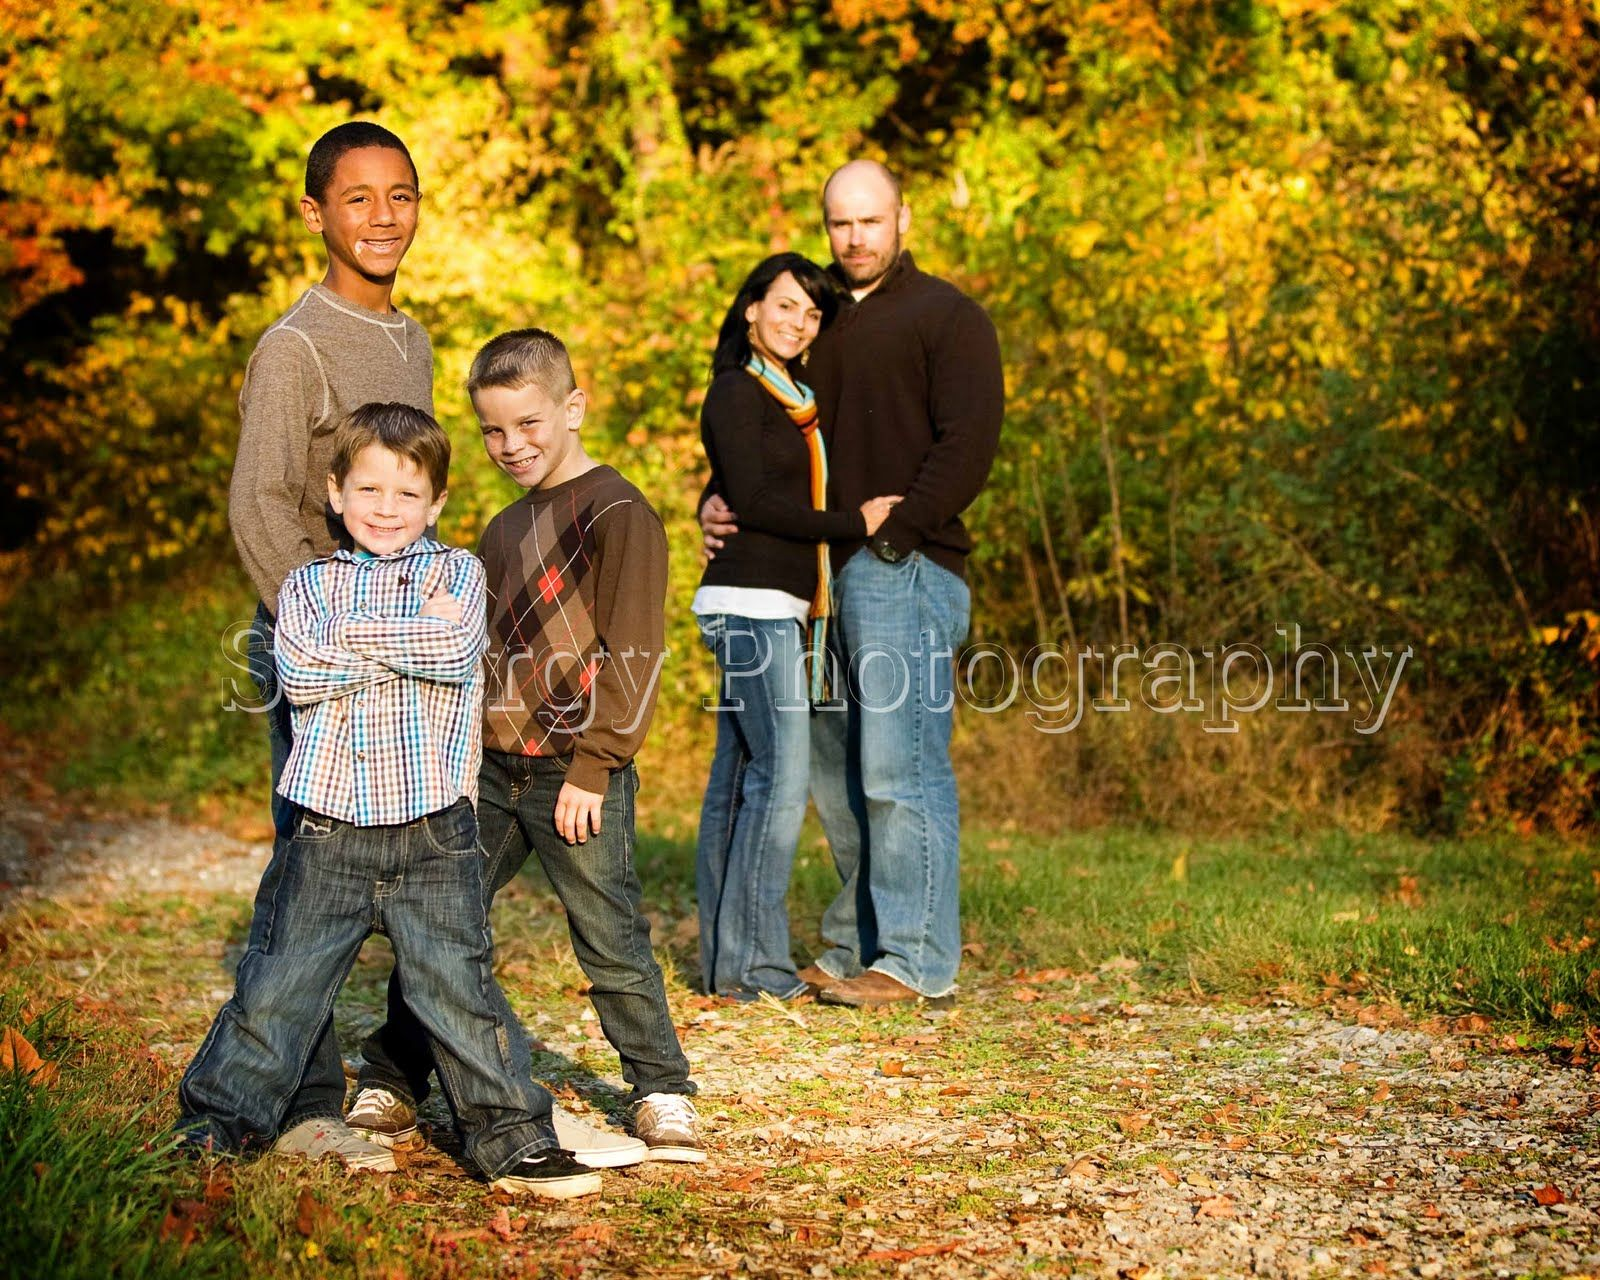 Best 25 fall family portraits ideas on pinterest fall Fall family photo clothing ideas